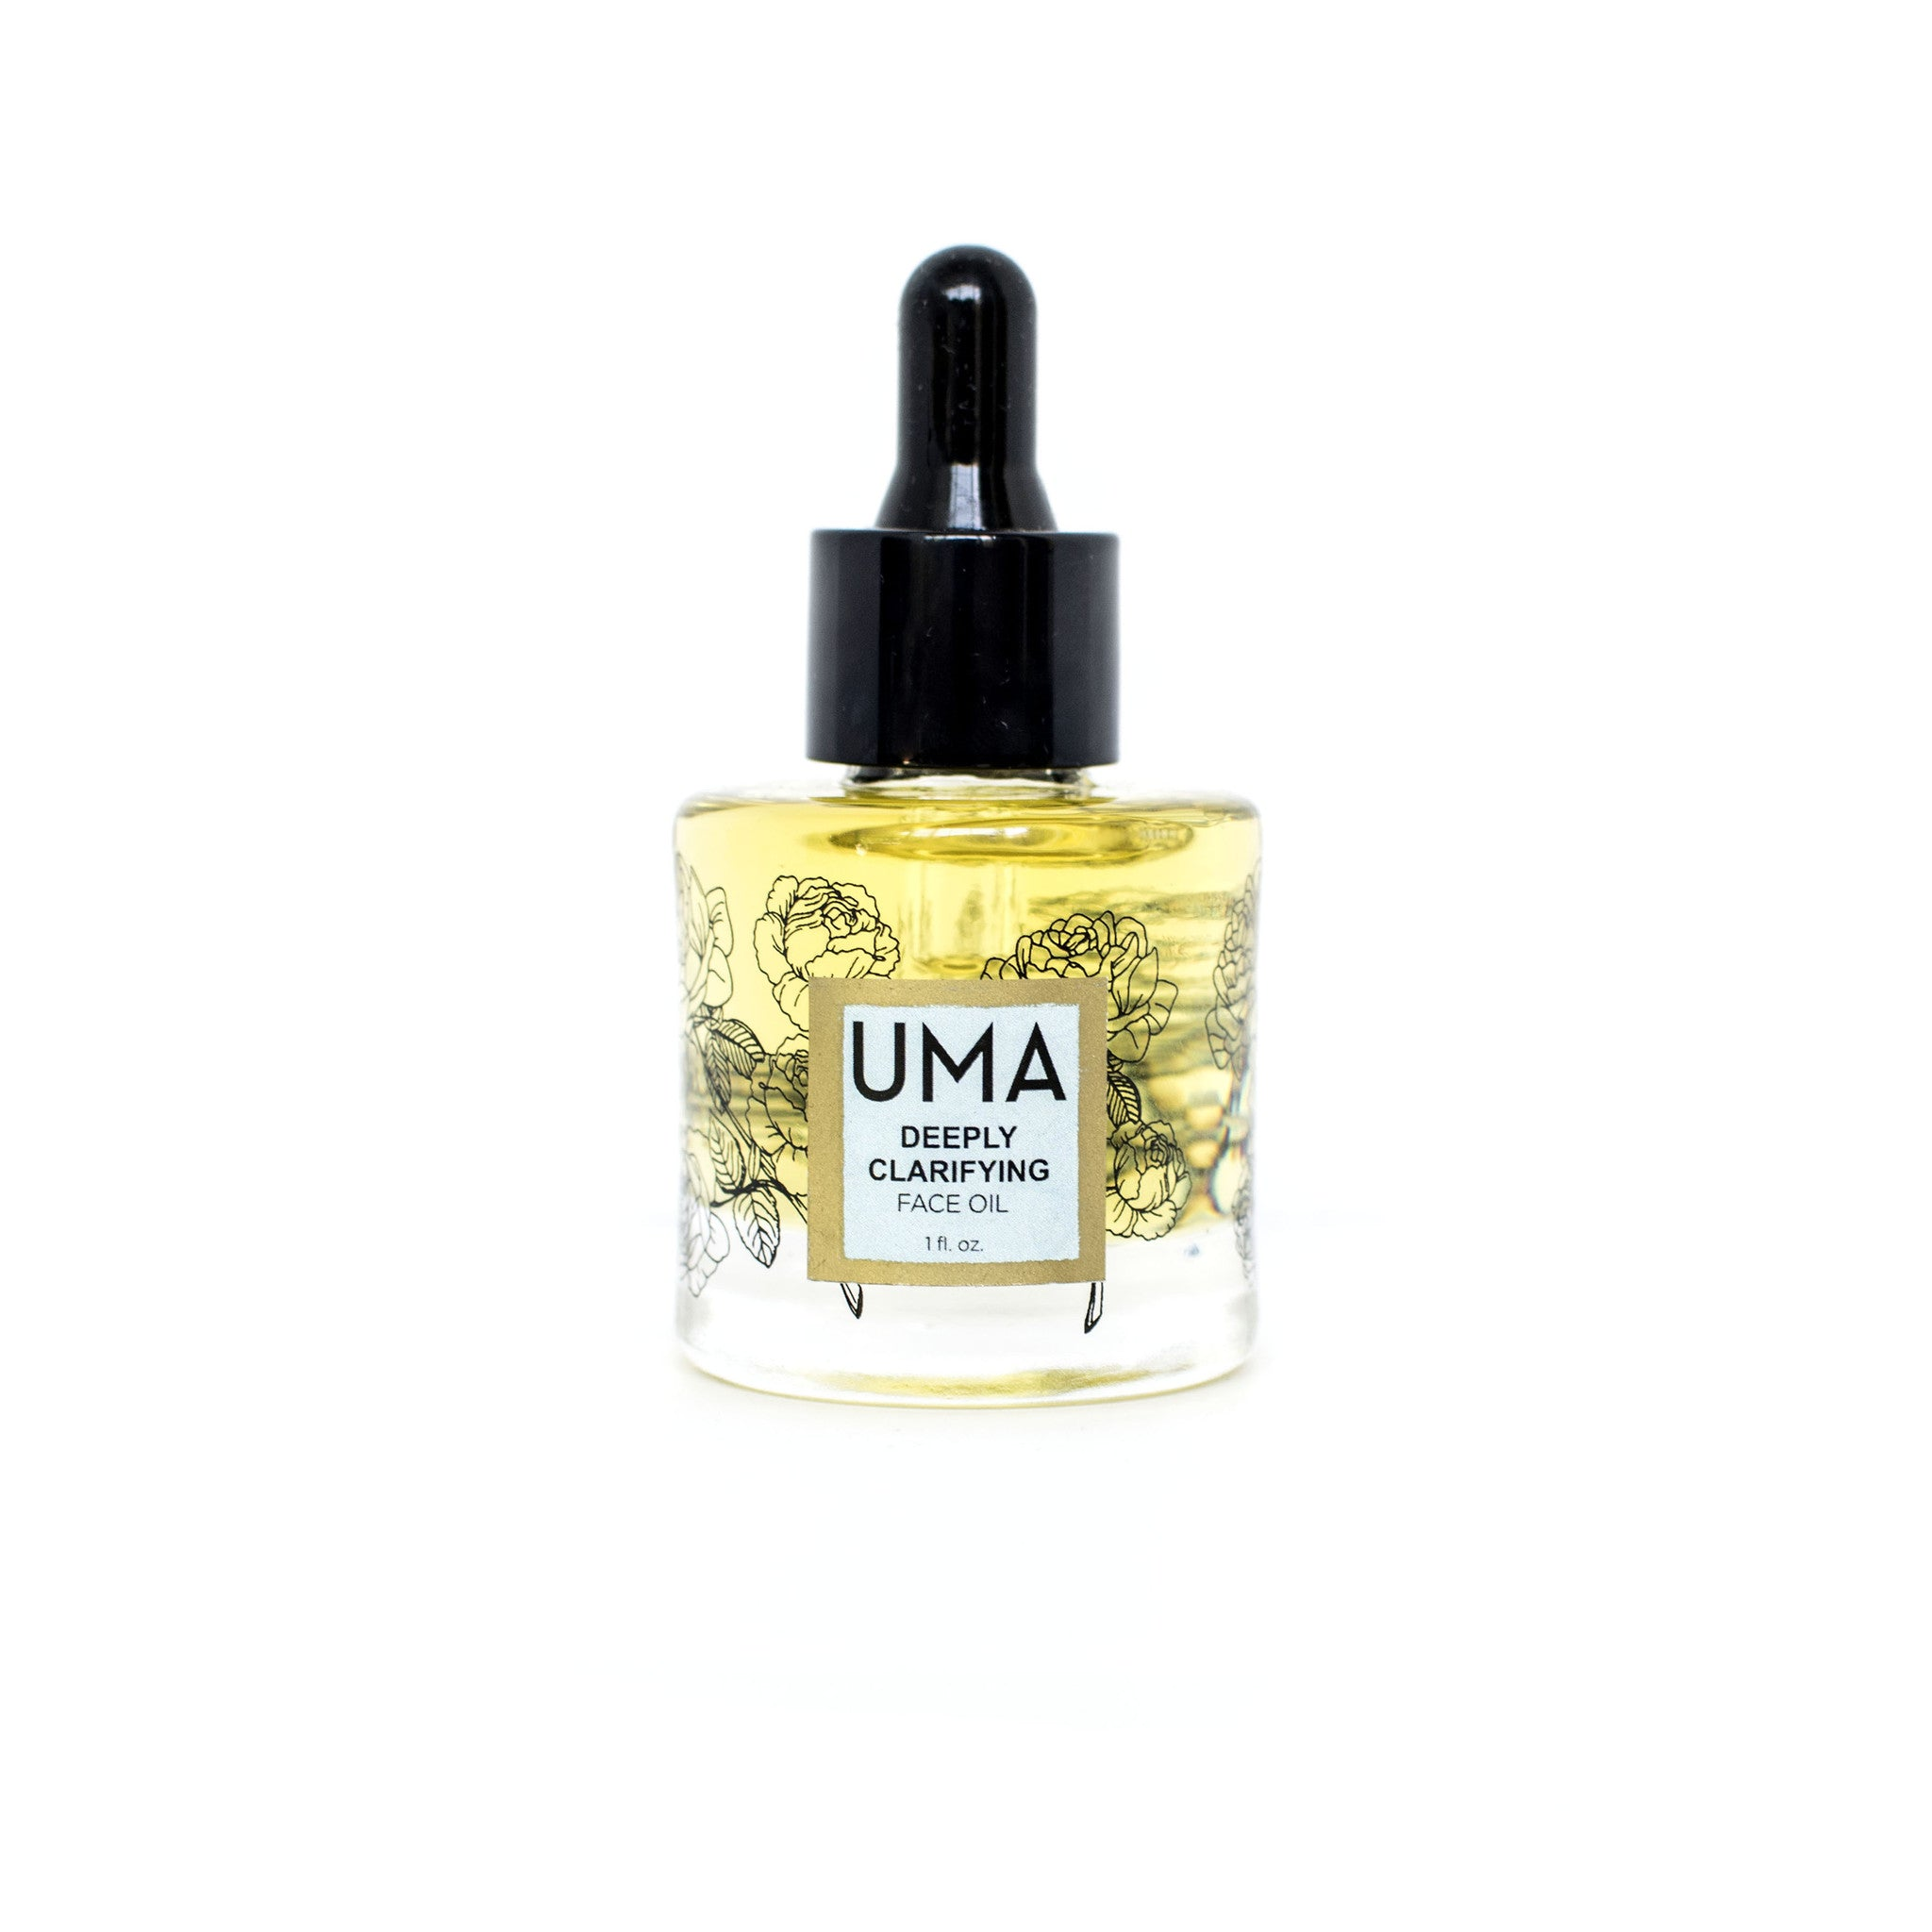 Deep Clarifying Face Oil